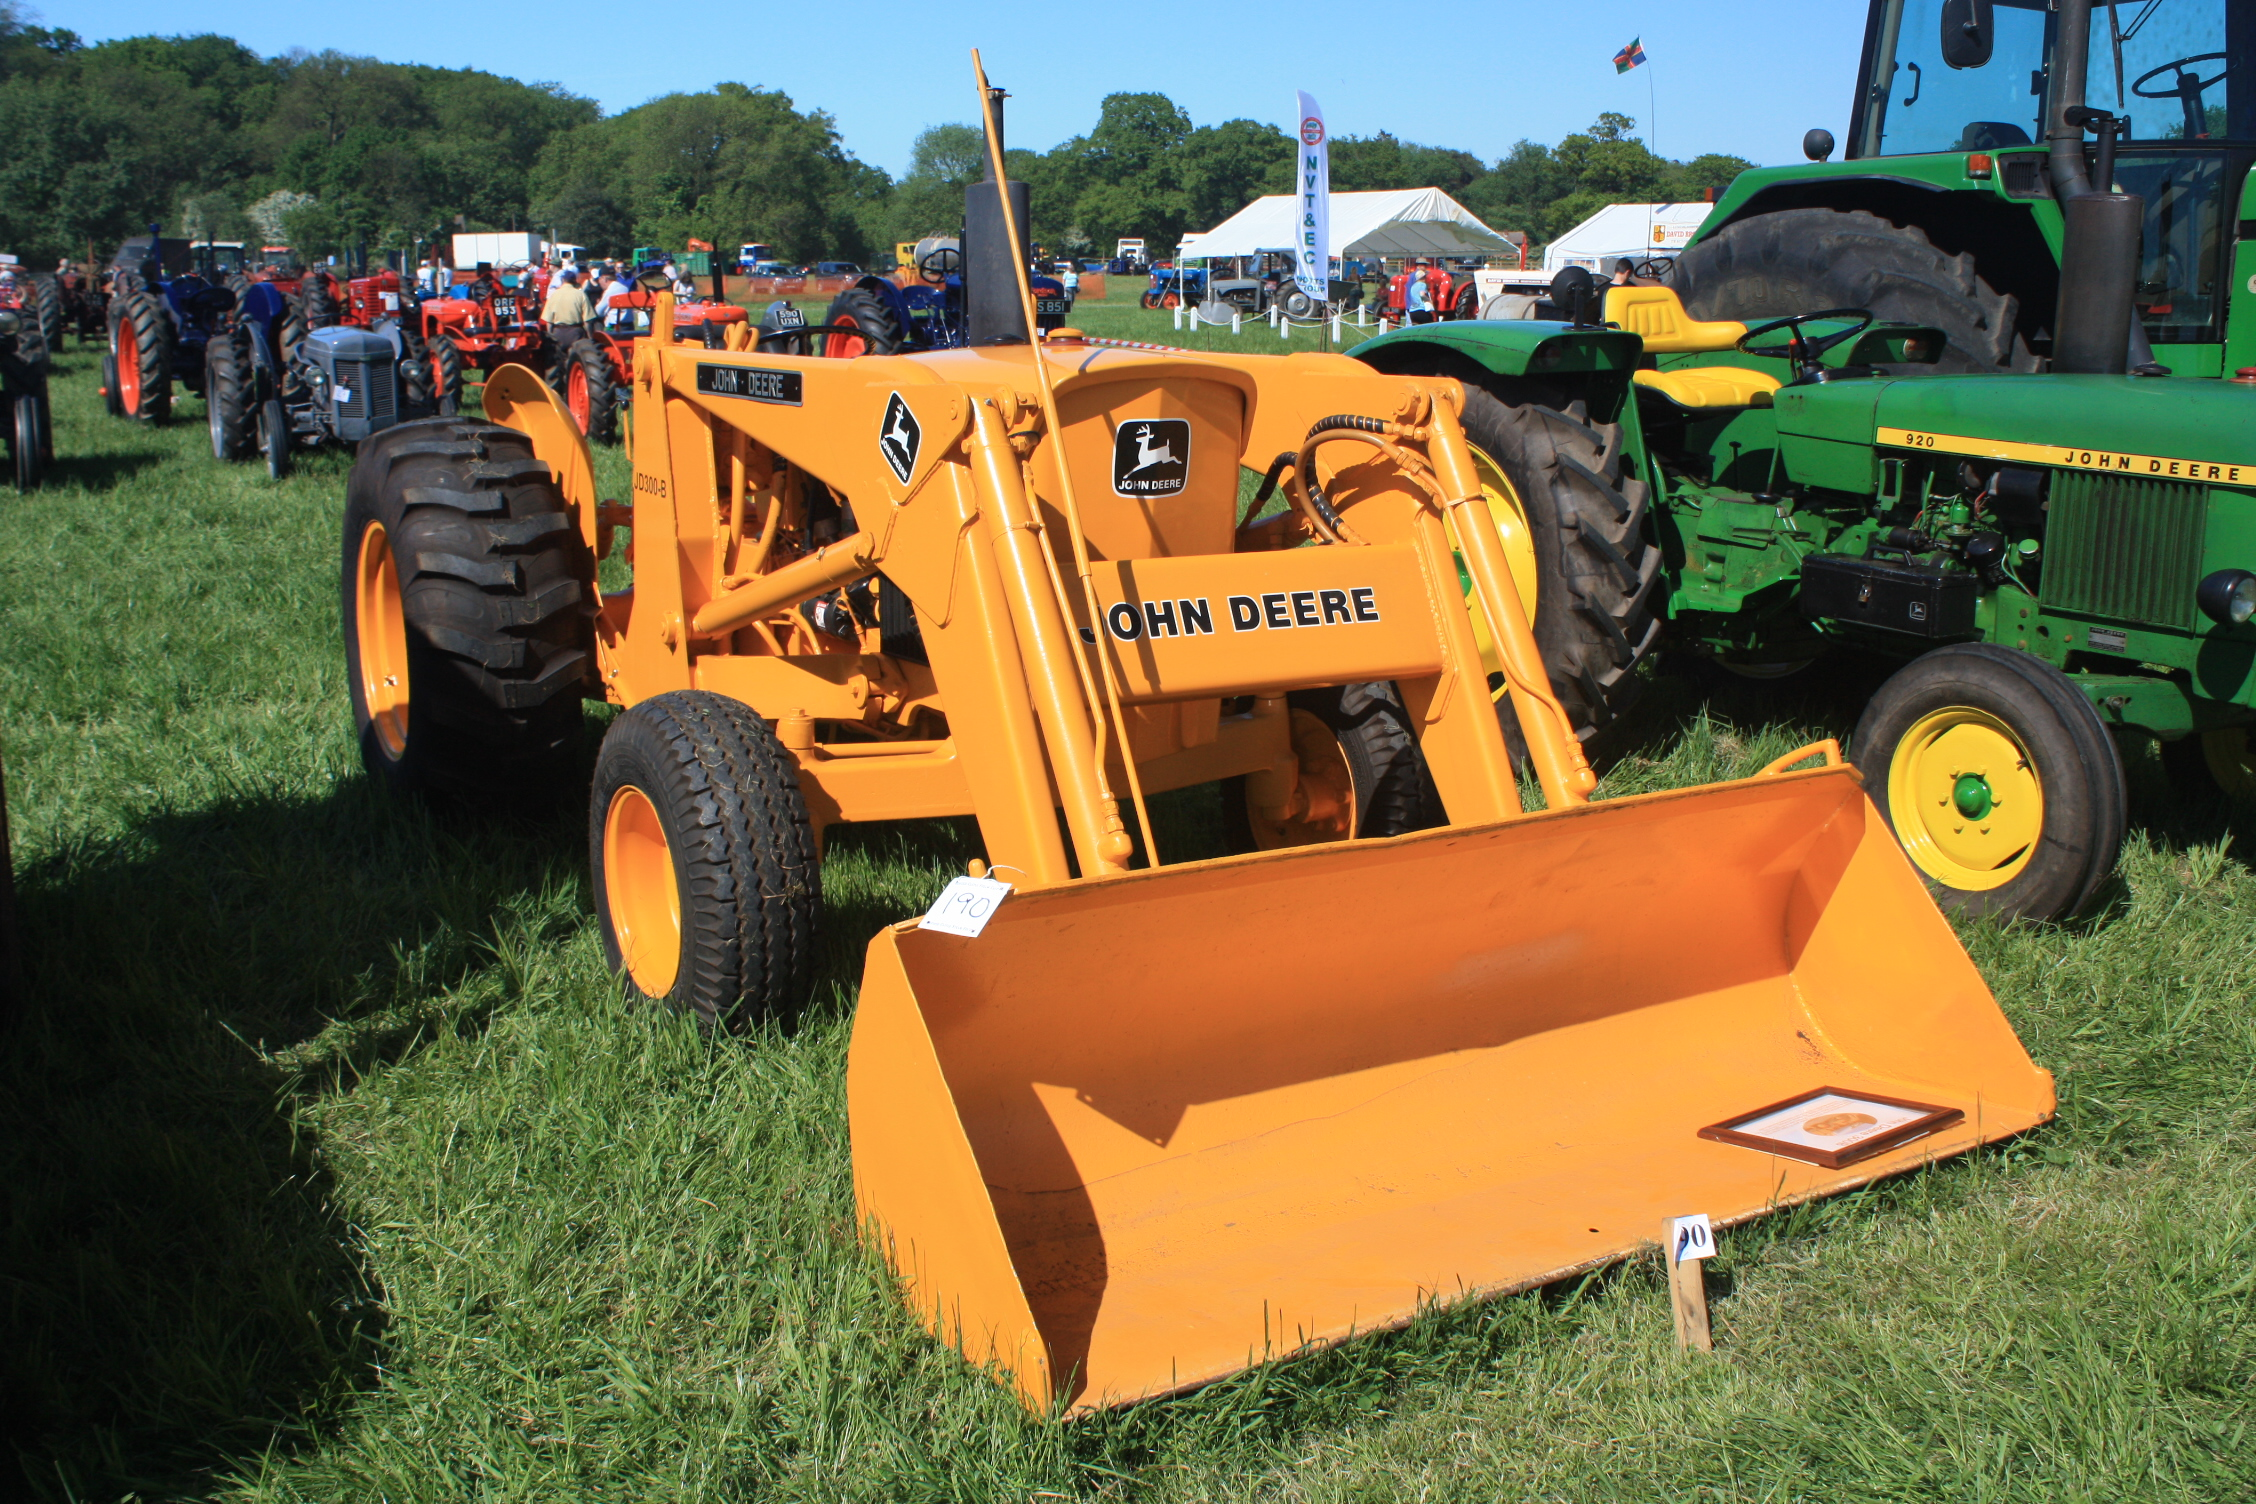 John Deere 300 B Tractor & Construction Plant Wiki The classic  #C97A02